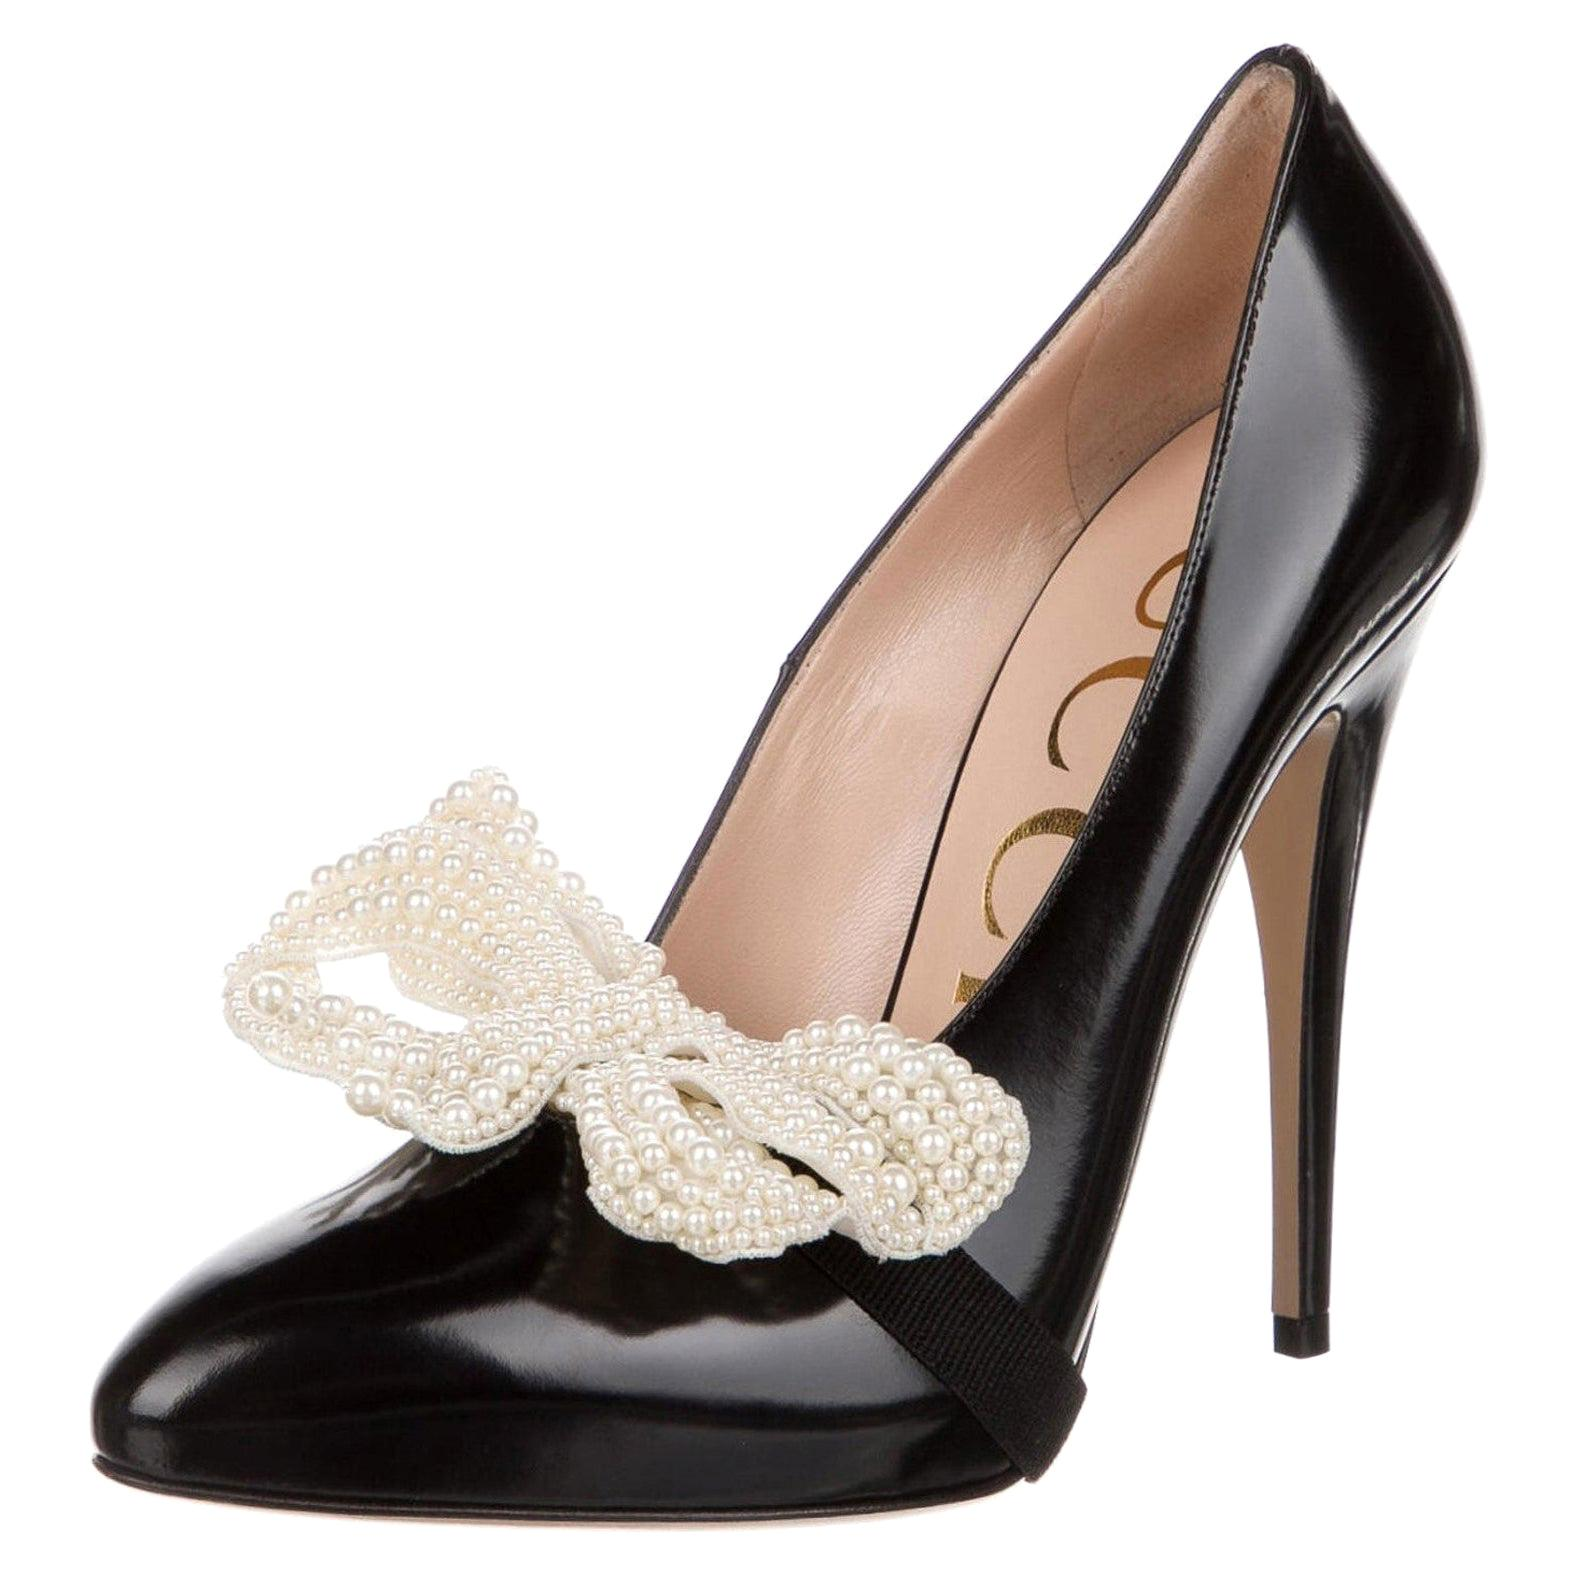 New Gucci Black Leather & Pearl Pumps Heels With Box Sz 37.5 $1855 Spring 2017